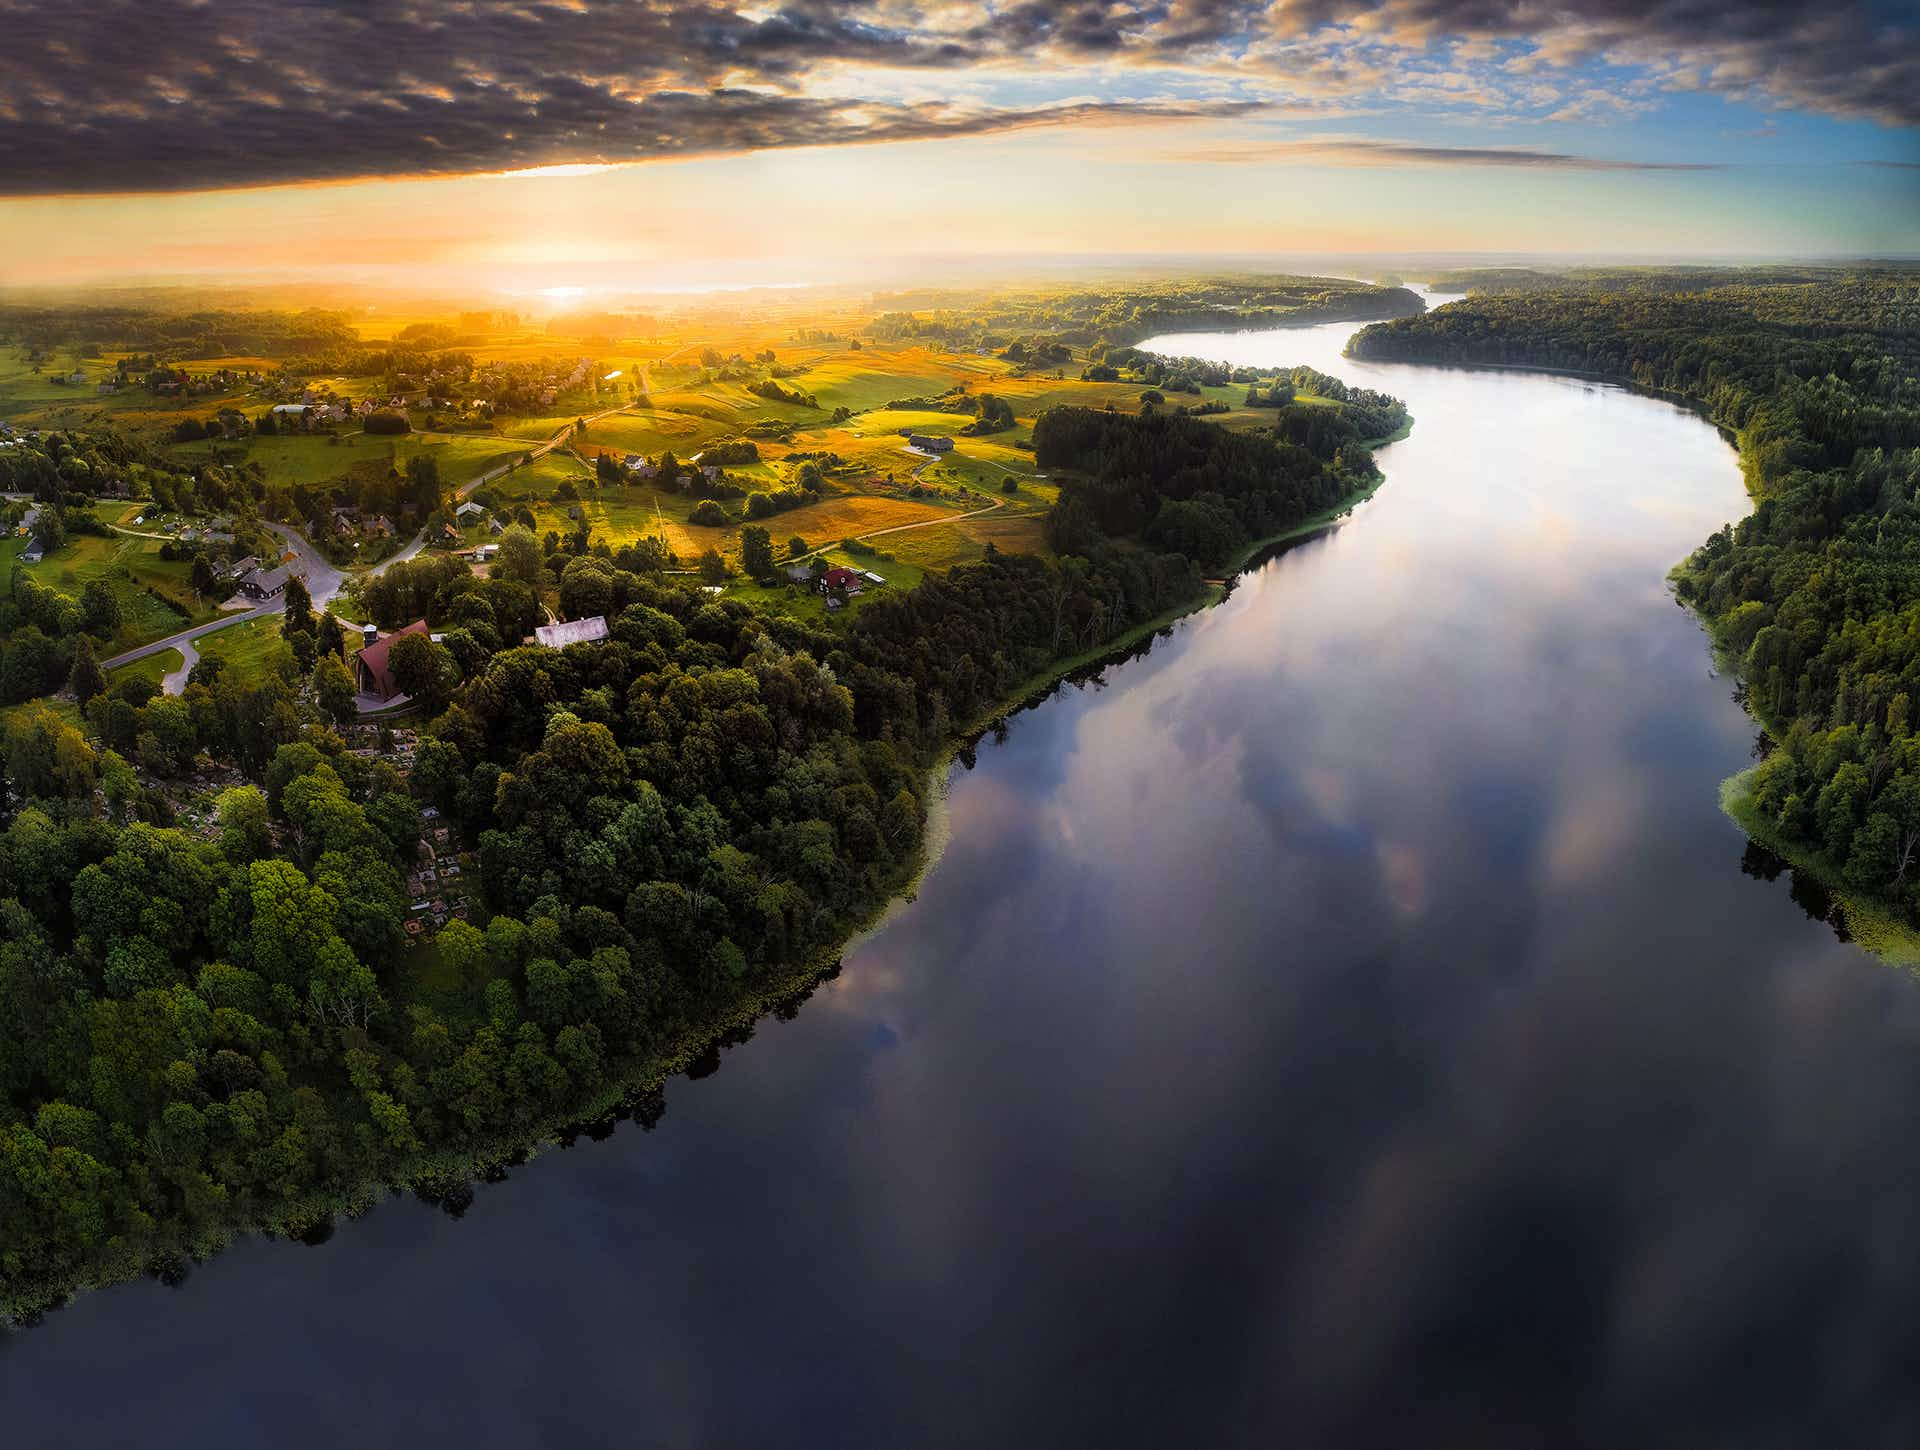 The spectacular beauty of Lithuania captured by drone